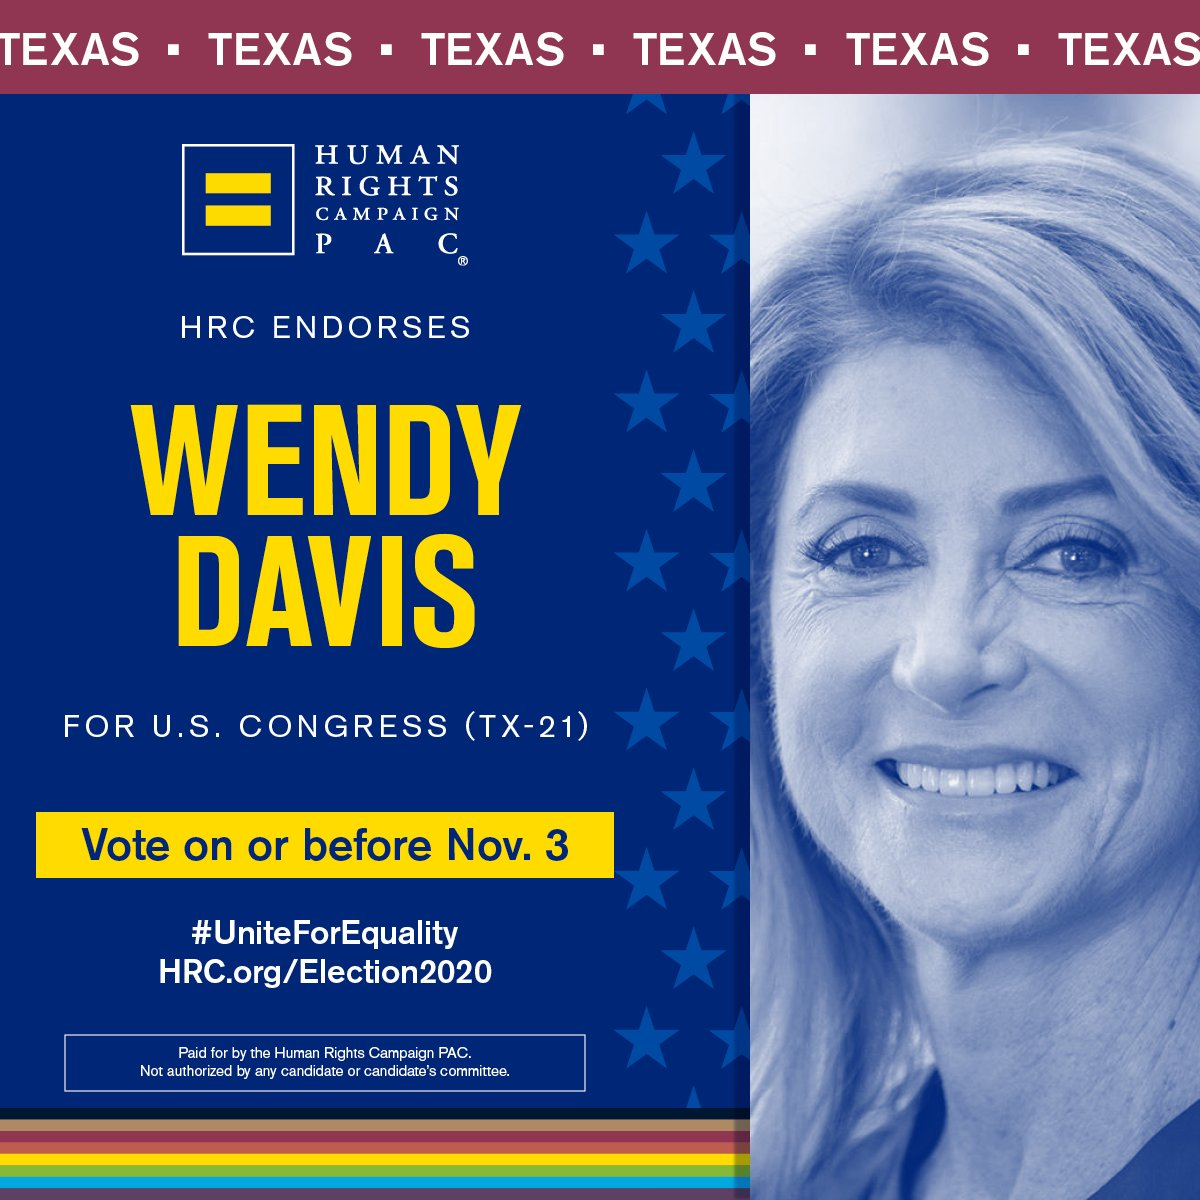 """Im thrilled to be endorsed by the Human Rights Campaign, TX chapter. The phrase """"we the people"""" in the constitution refers to ALL of us. That's why in Congress Ill be a champion for human & civil rights, including using my voice to protect & empower the LGBTQIA community. #TX21"""